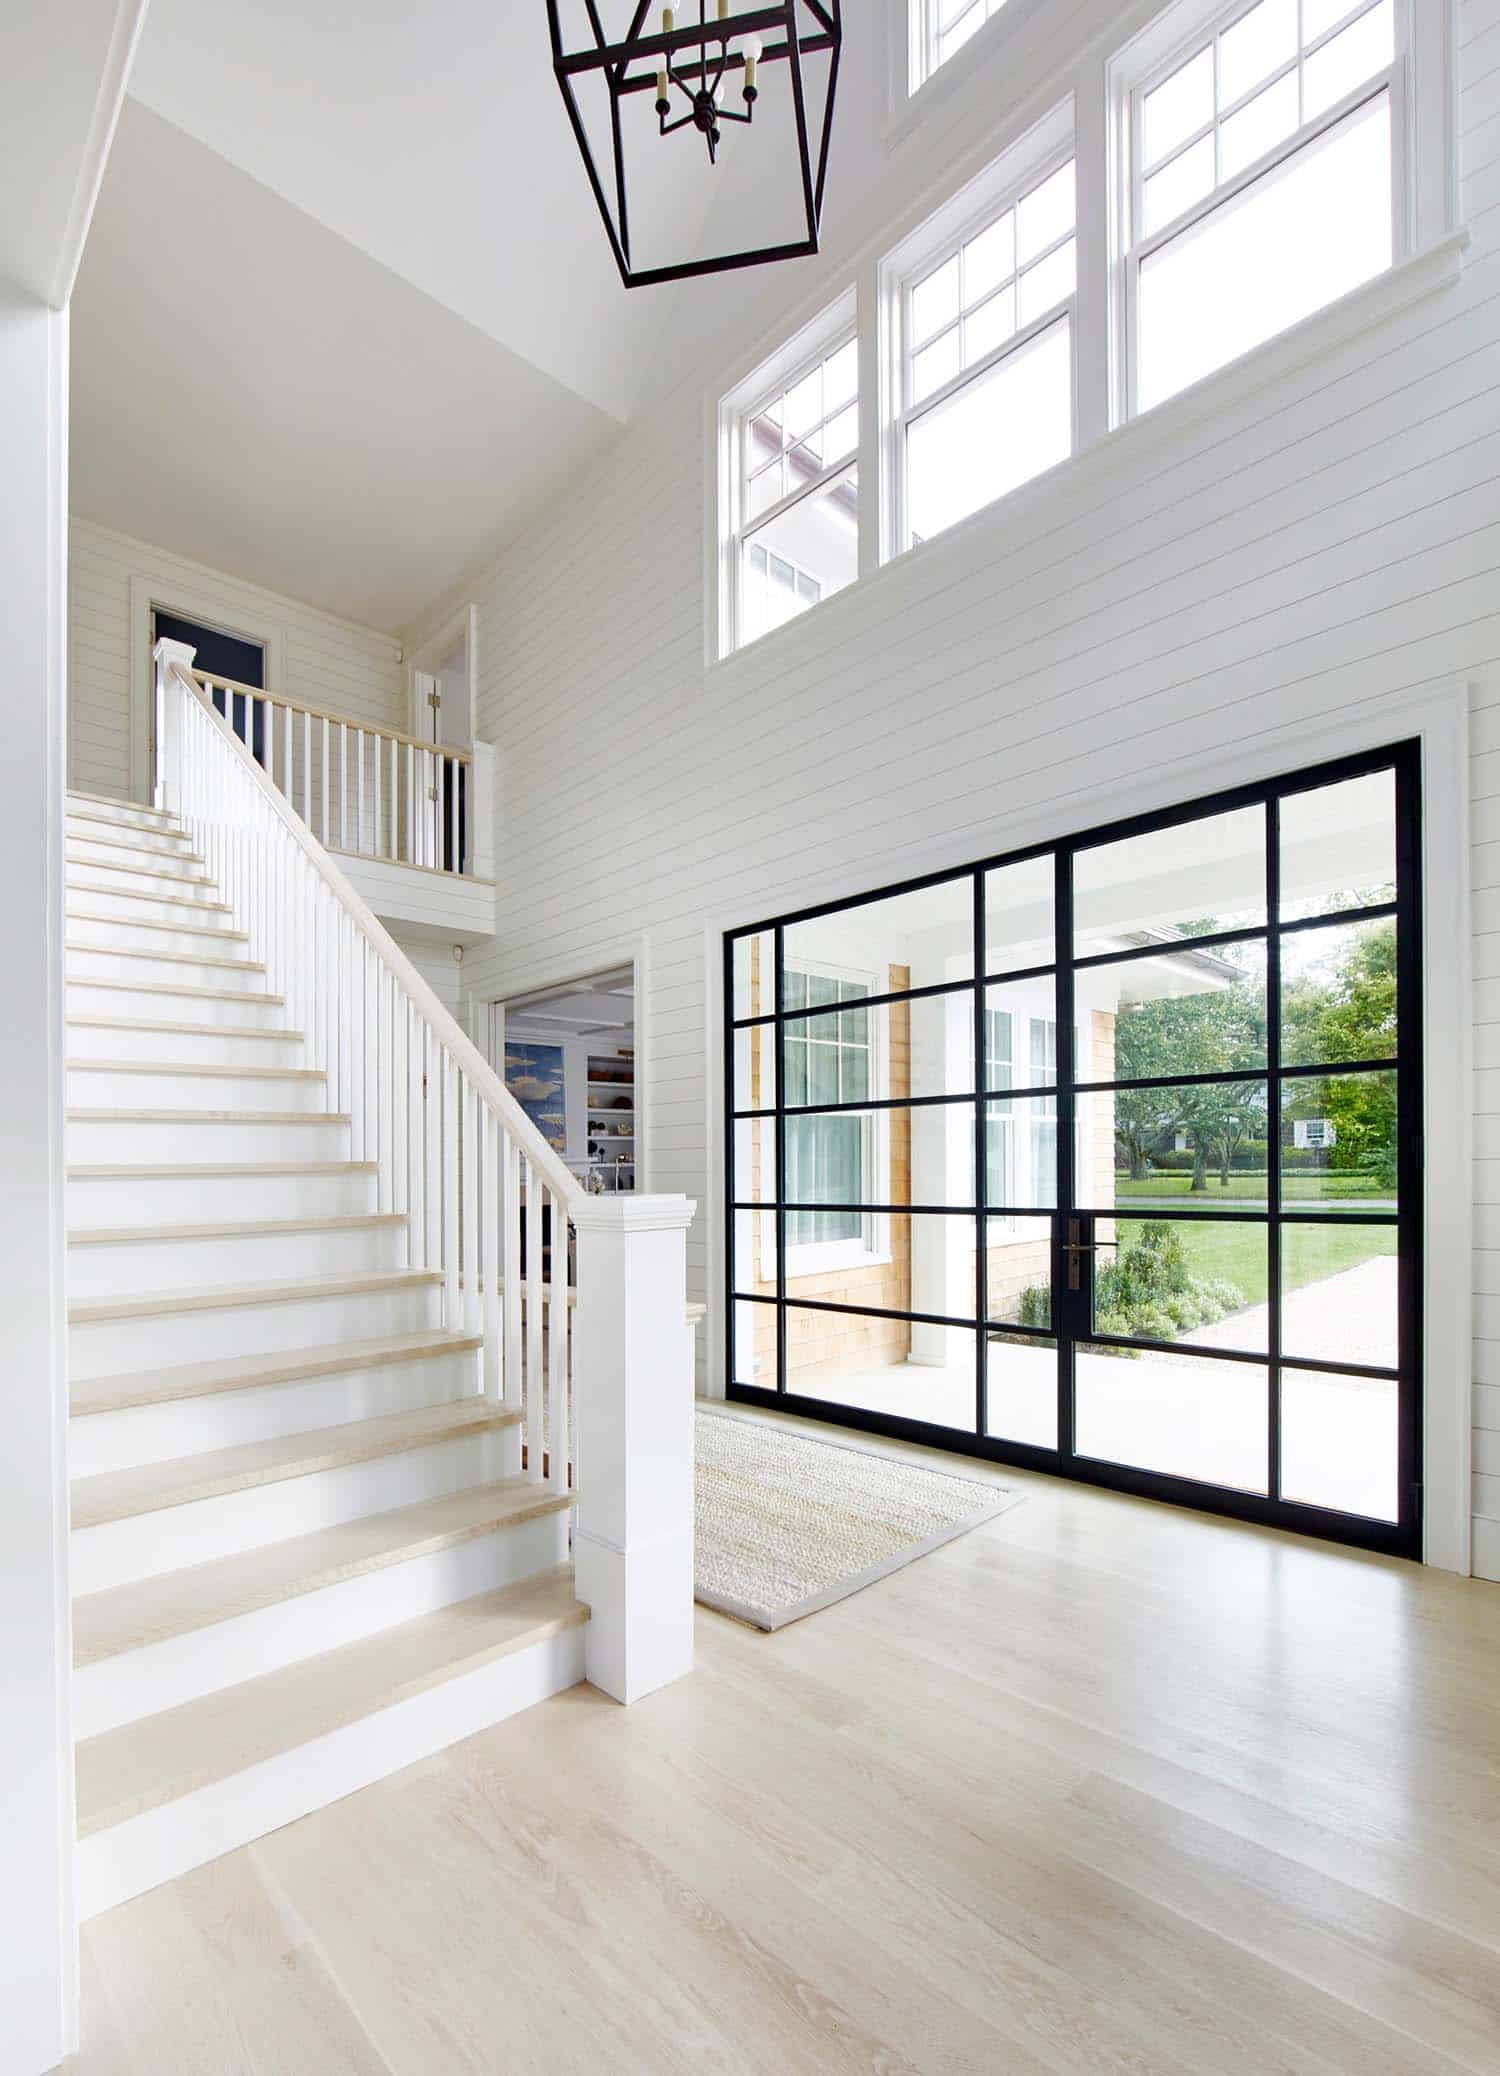 Amagansett Beach House-Chango-Co-03-1 Kindesign